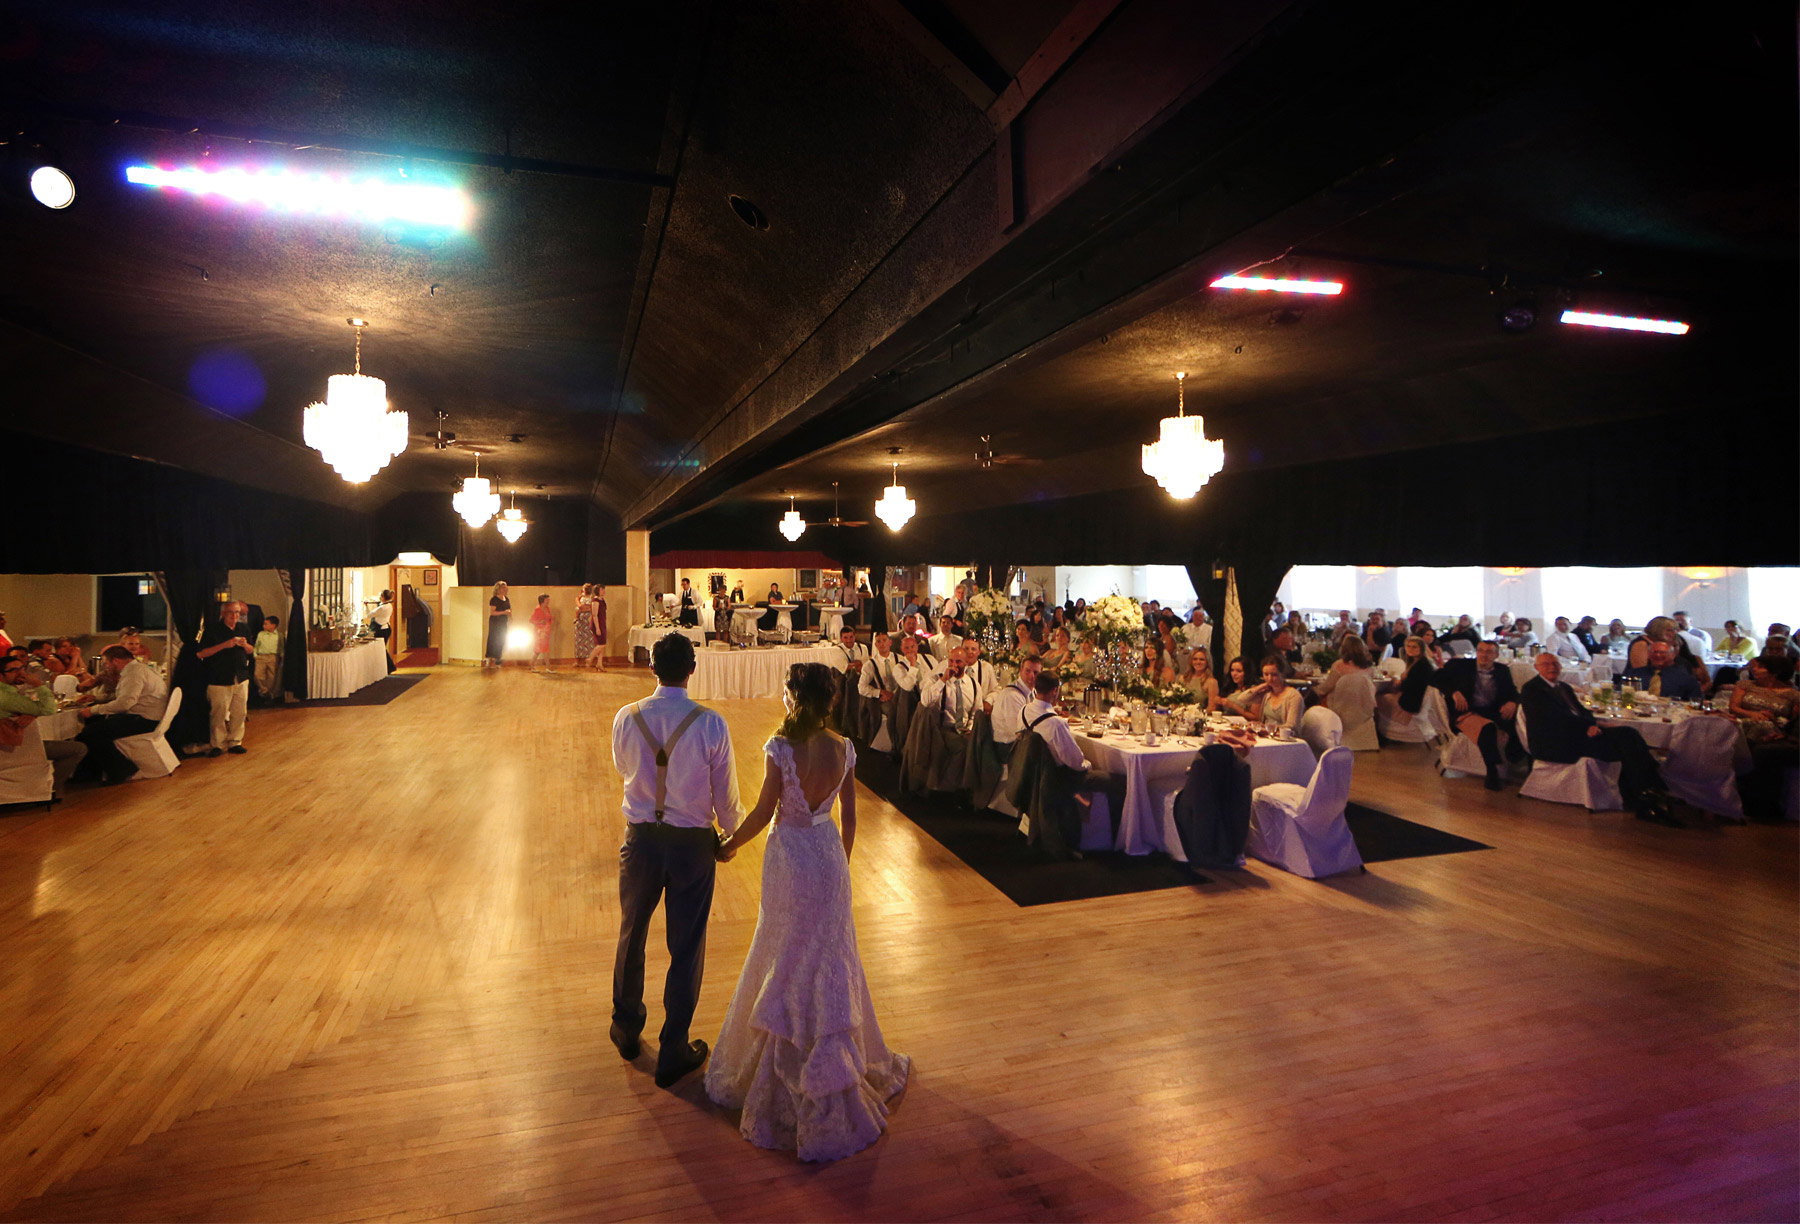 18-Stillwater-Minnesota-Wedding-Photography-by-Vick-Photography---Withrow-Ballroom-Alicia-&-Cole.jpg